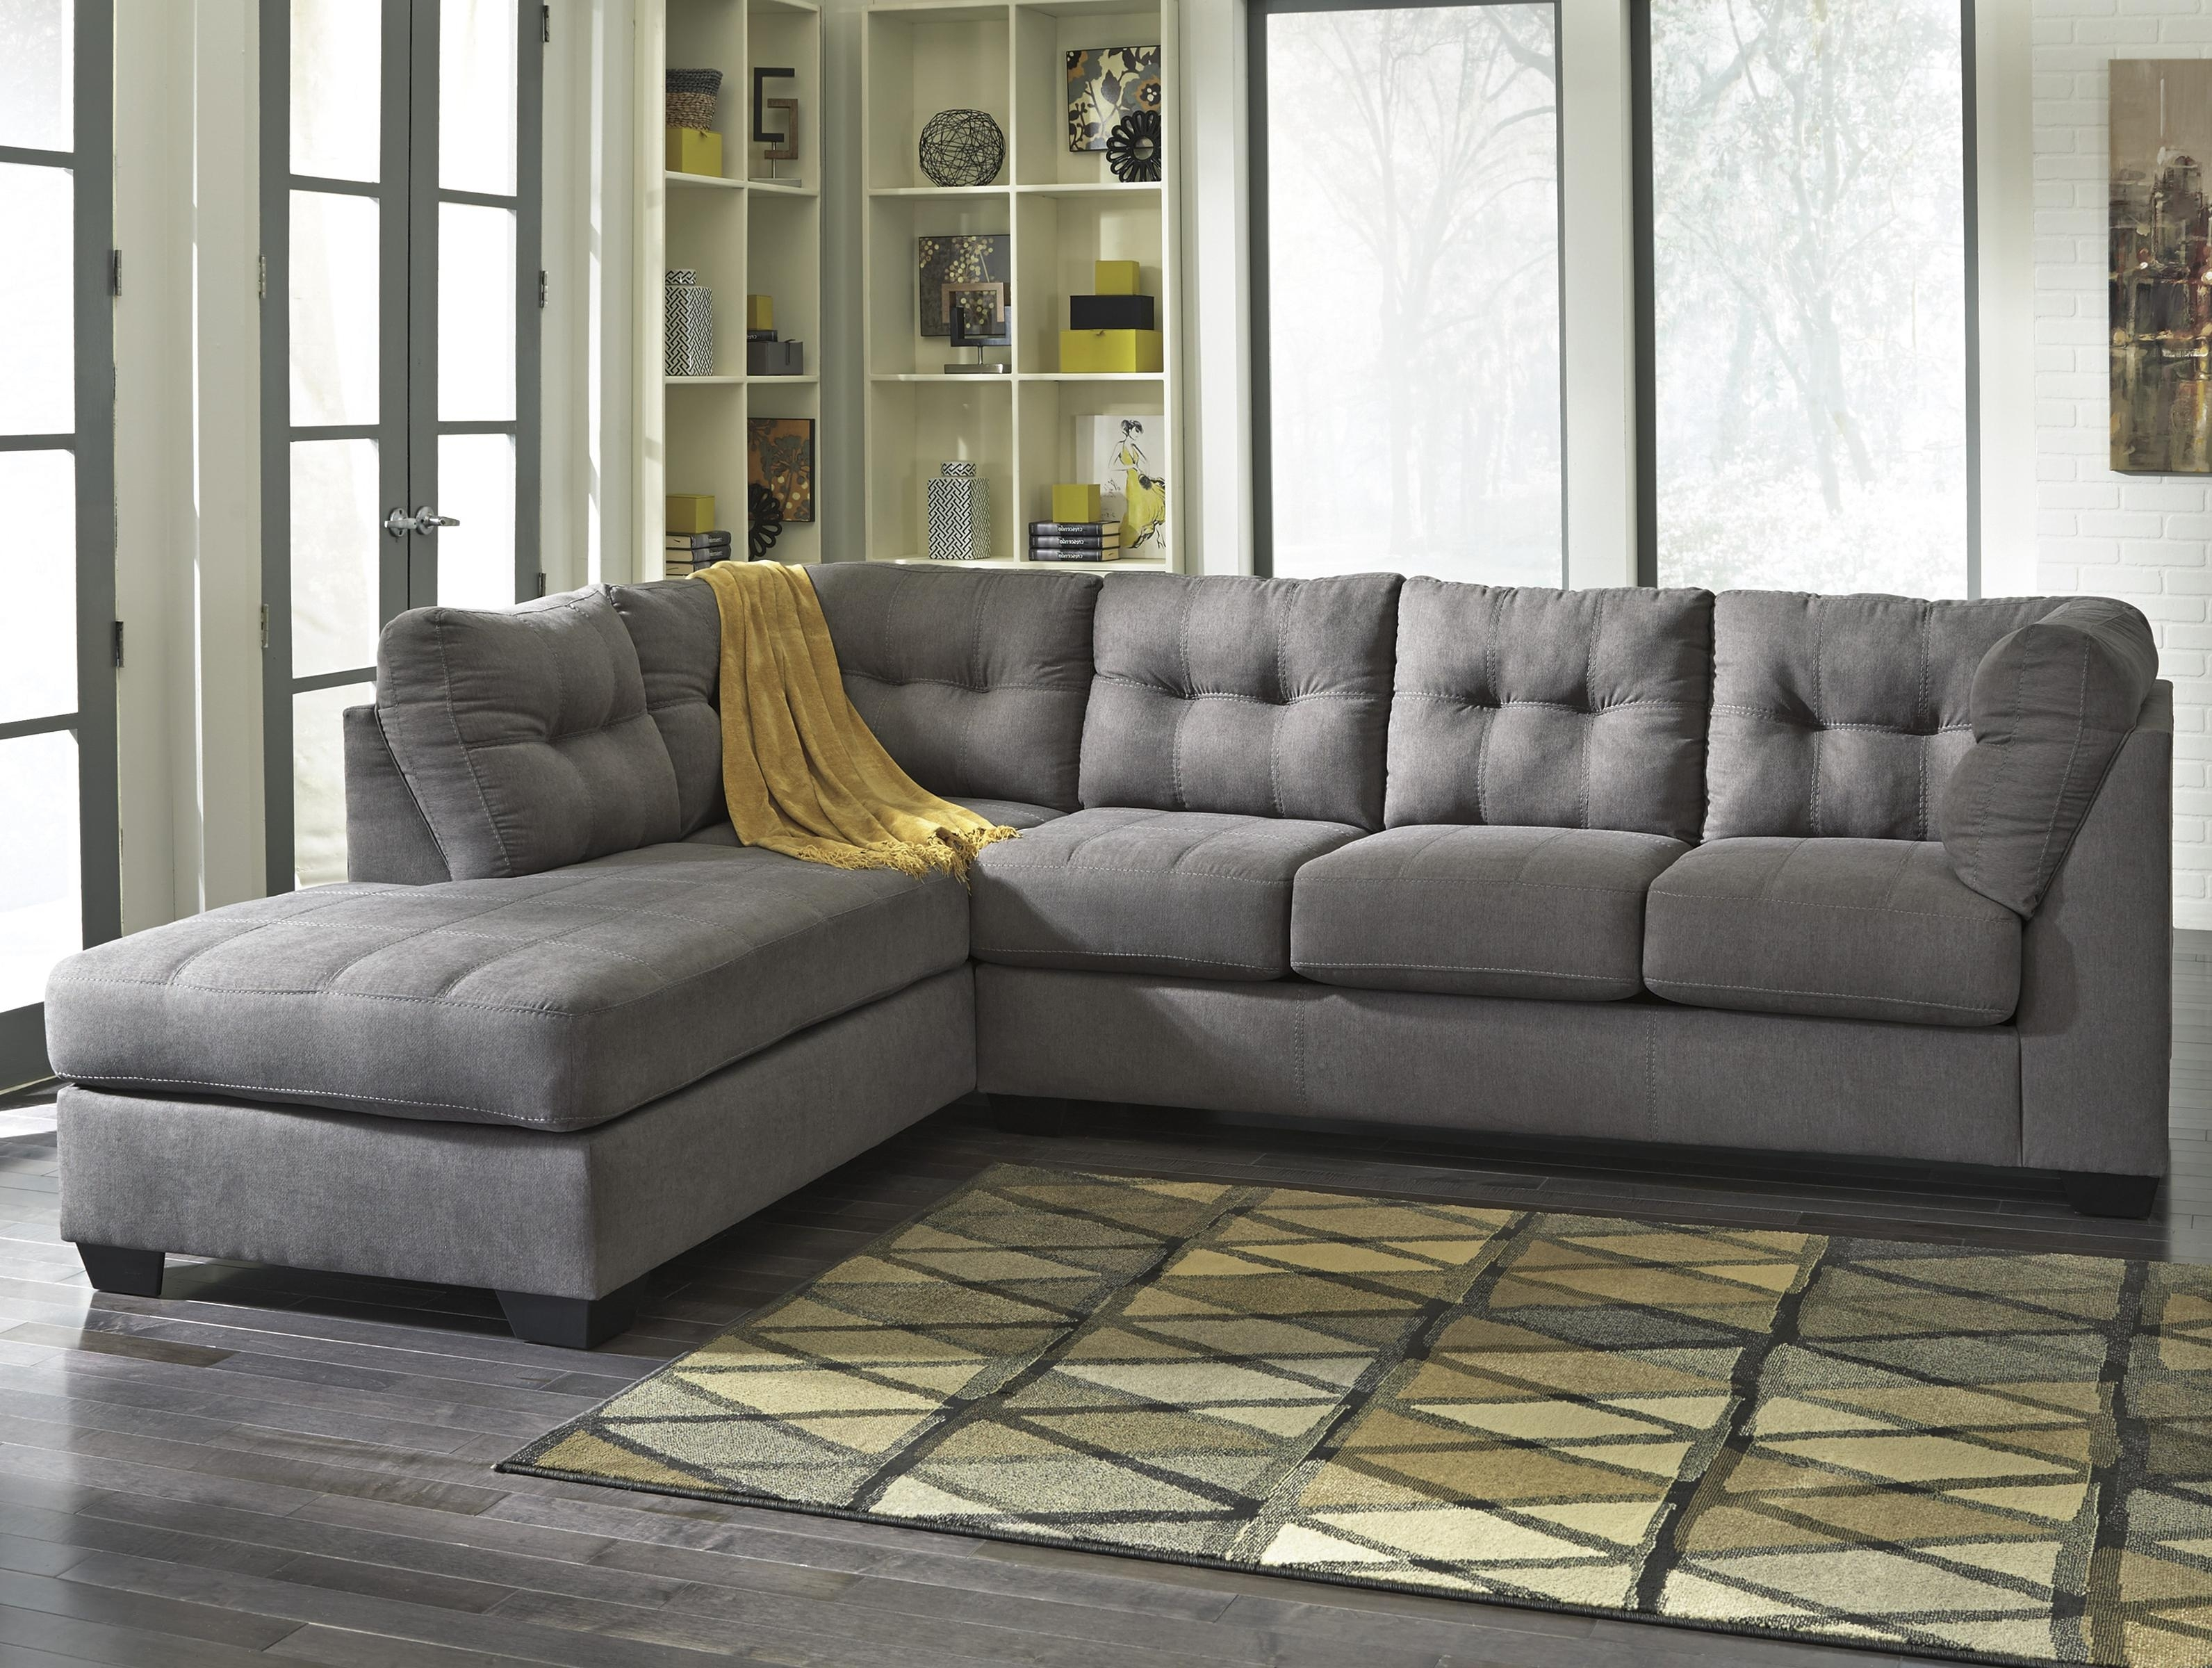 Benchcraft Maier – Charcoal 2 Piece Sectional W/ Sleeper Sofa & Left Within Sectional Sofas With 2 Chaises (View 5 of 10)